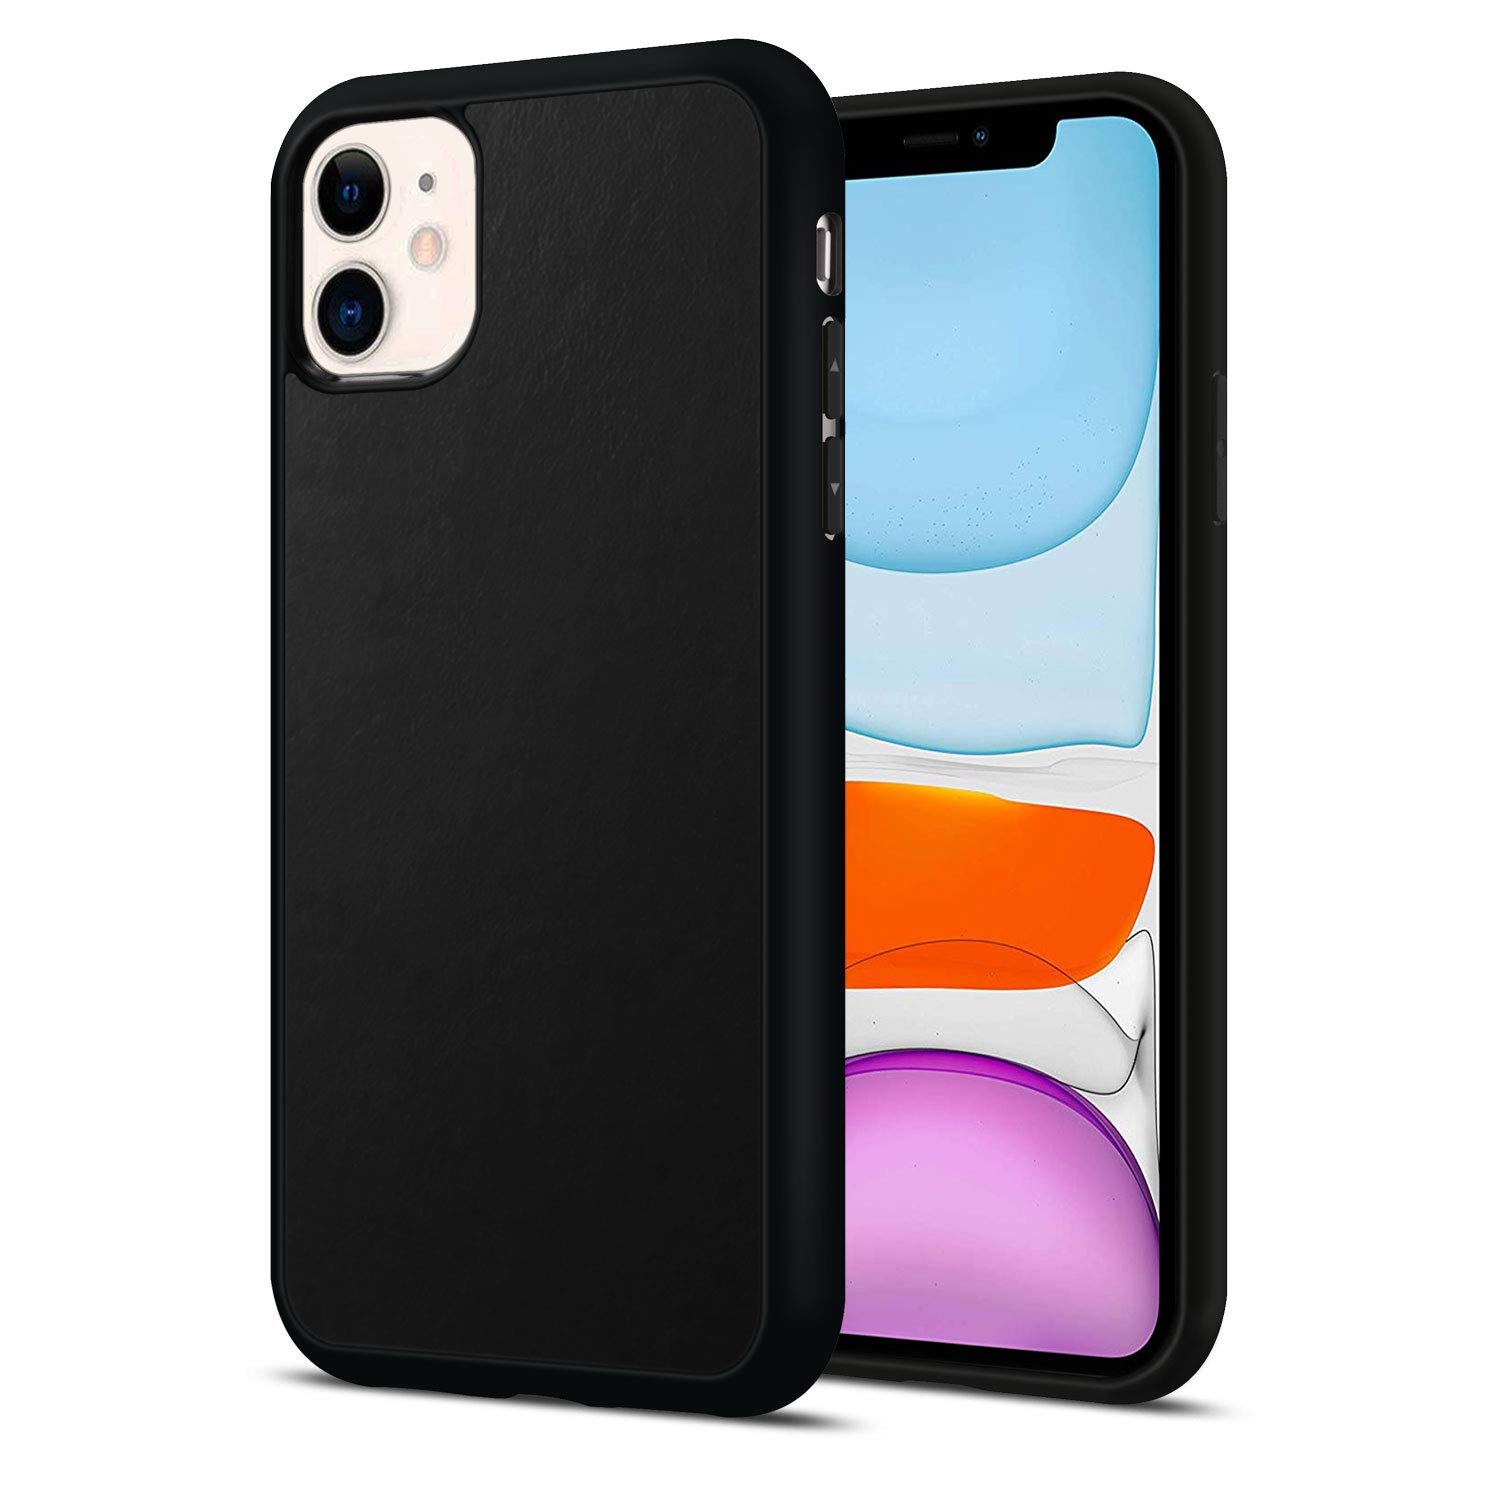 JuBeCo iPhone 11 Case,Calfskin Genuine Leather with Flexible TPU Bumper, Full-Body Protection,Slim Elegant Hybrid Case for iPhone 11 6.1inch -Black Leather